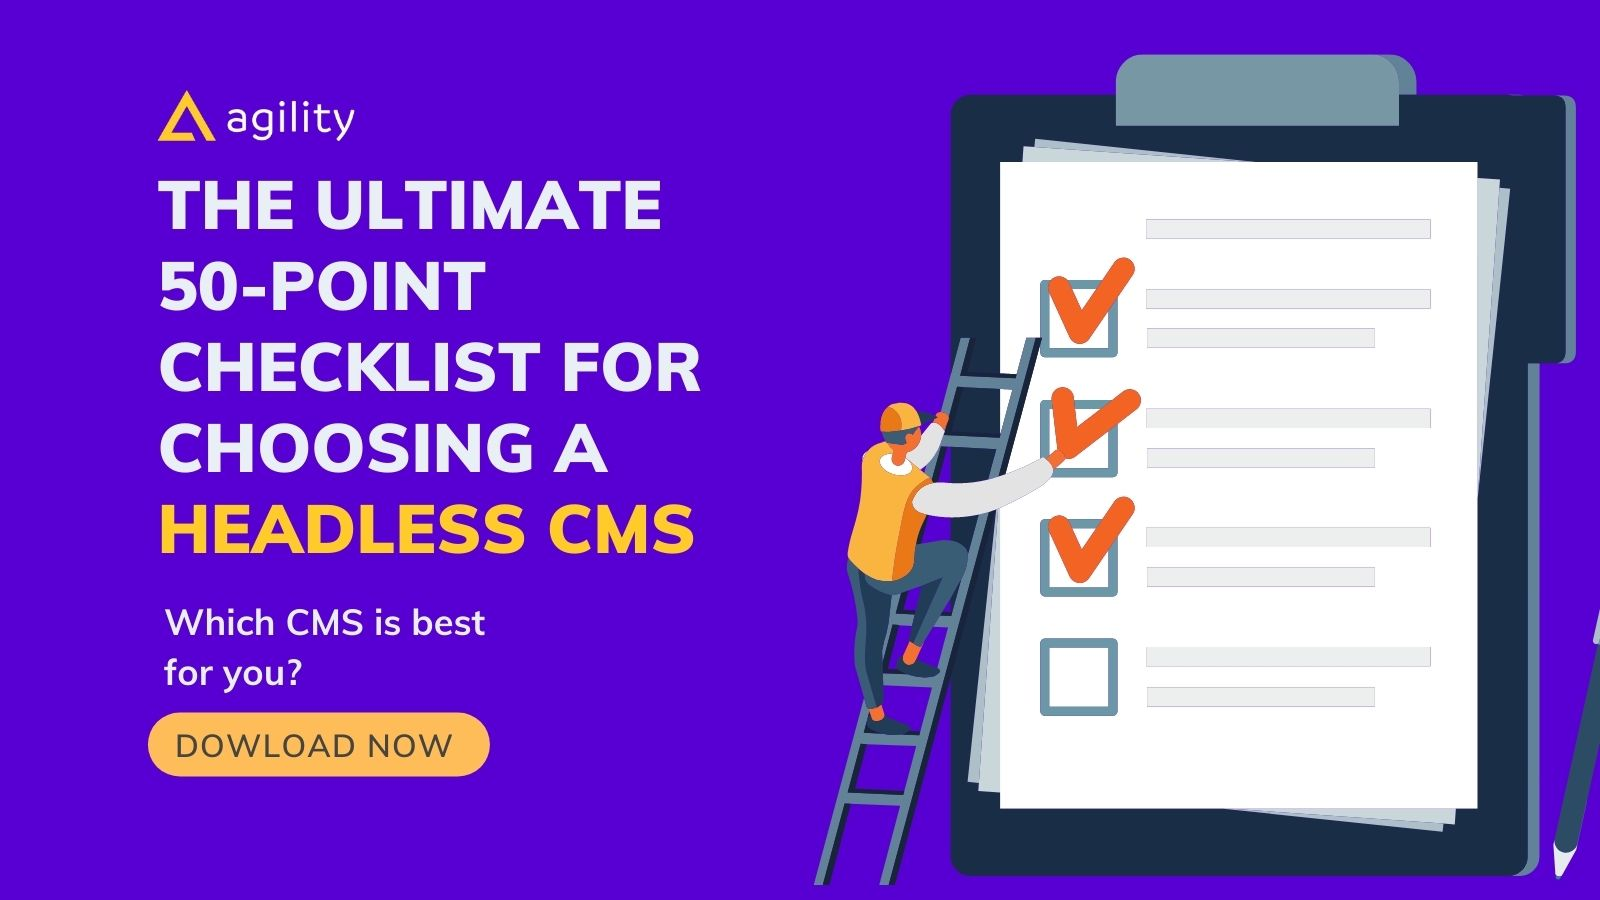 https://agilitycms.com/download/50-point-checklist-headless-cms?source=blog